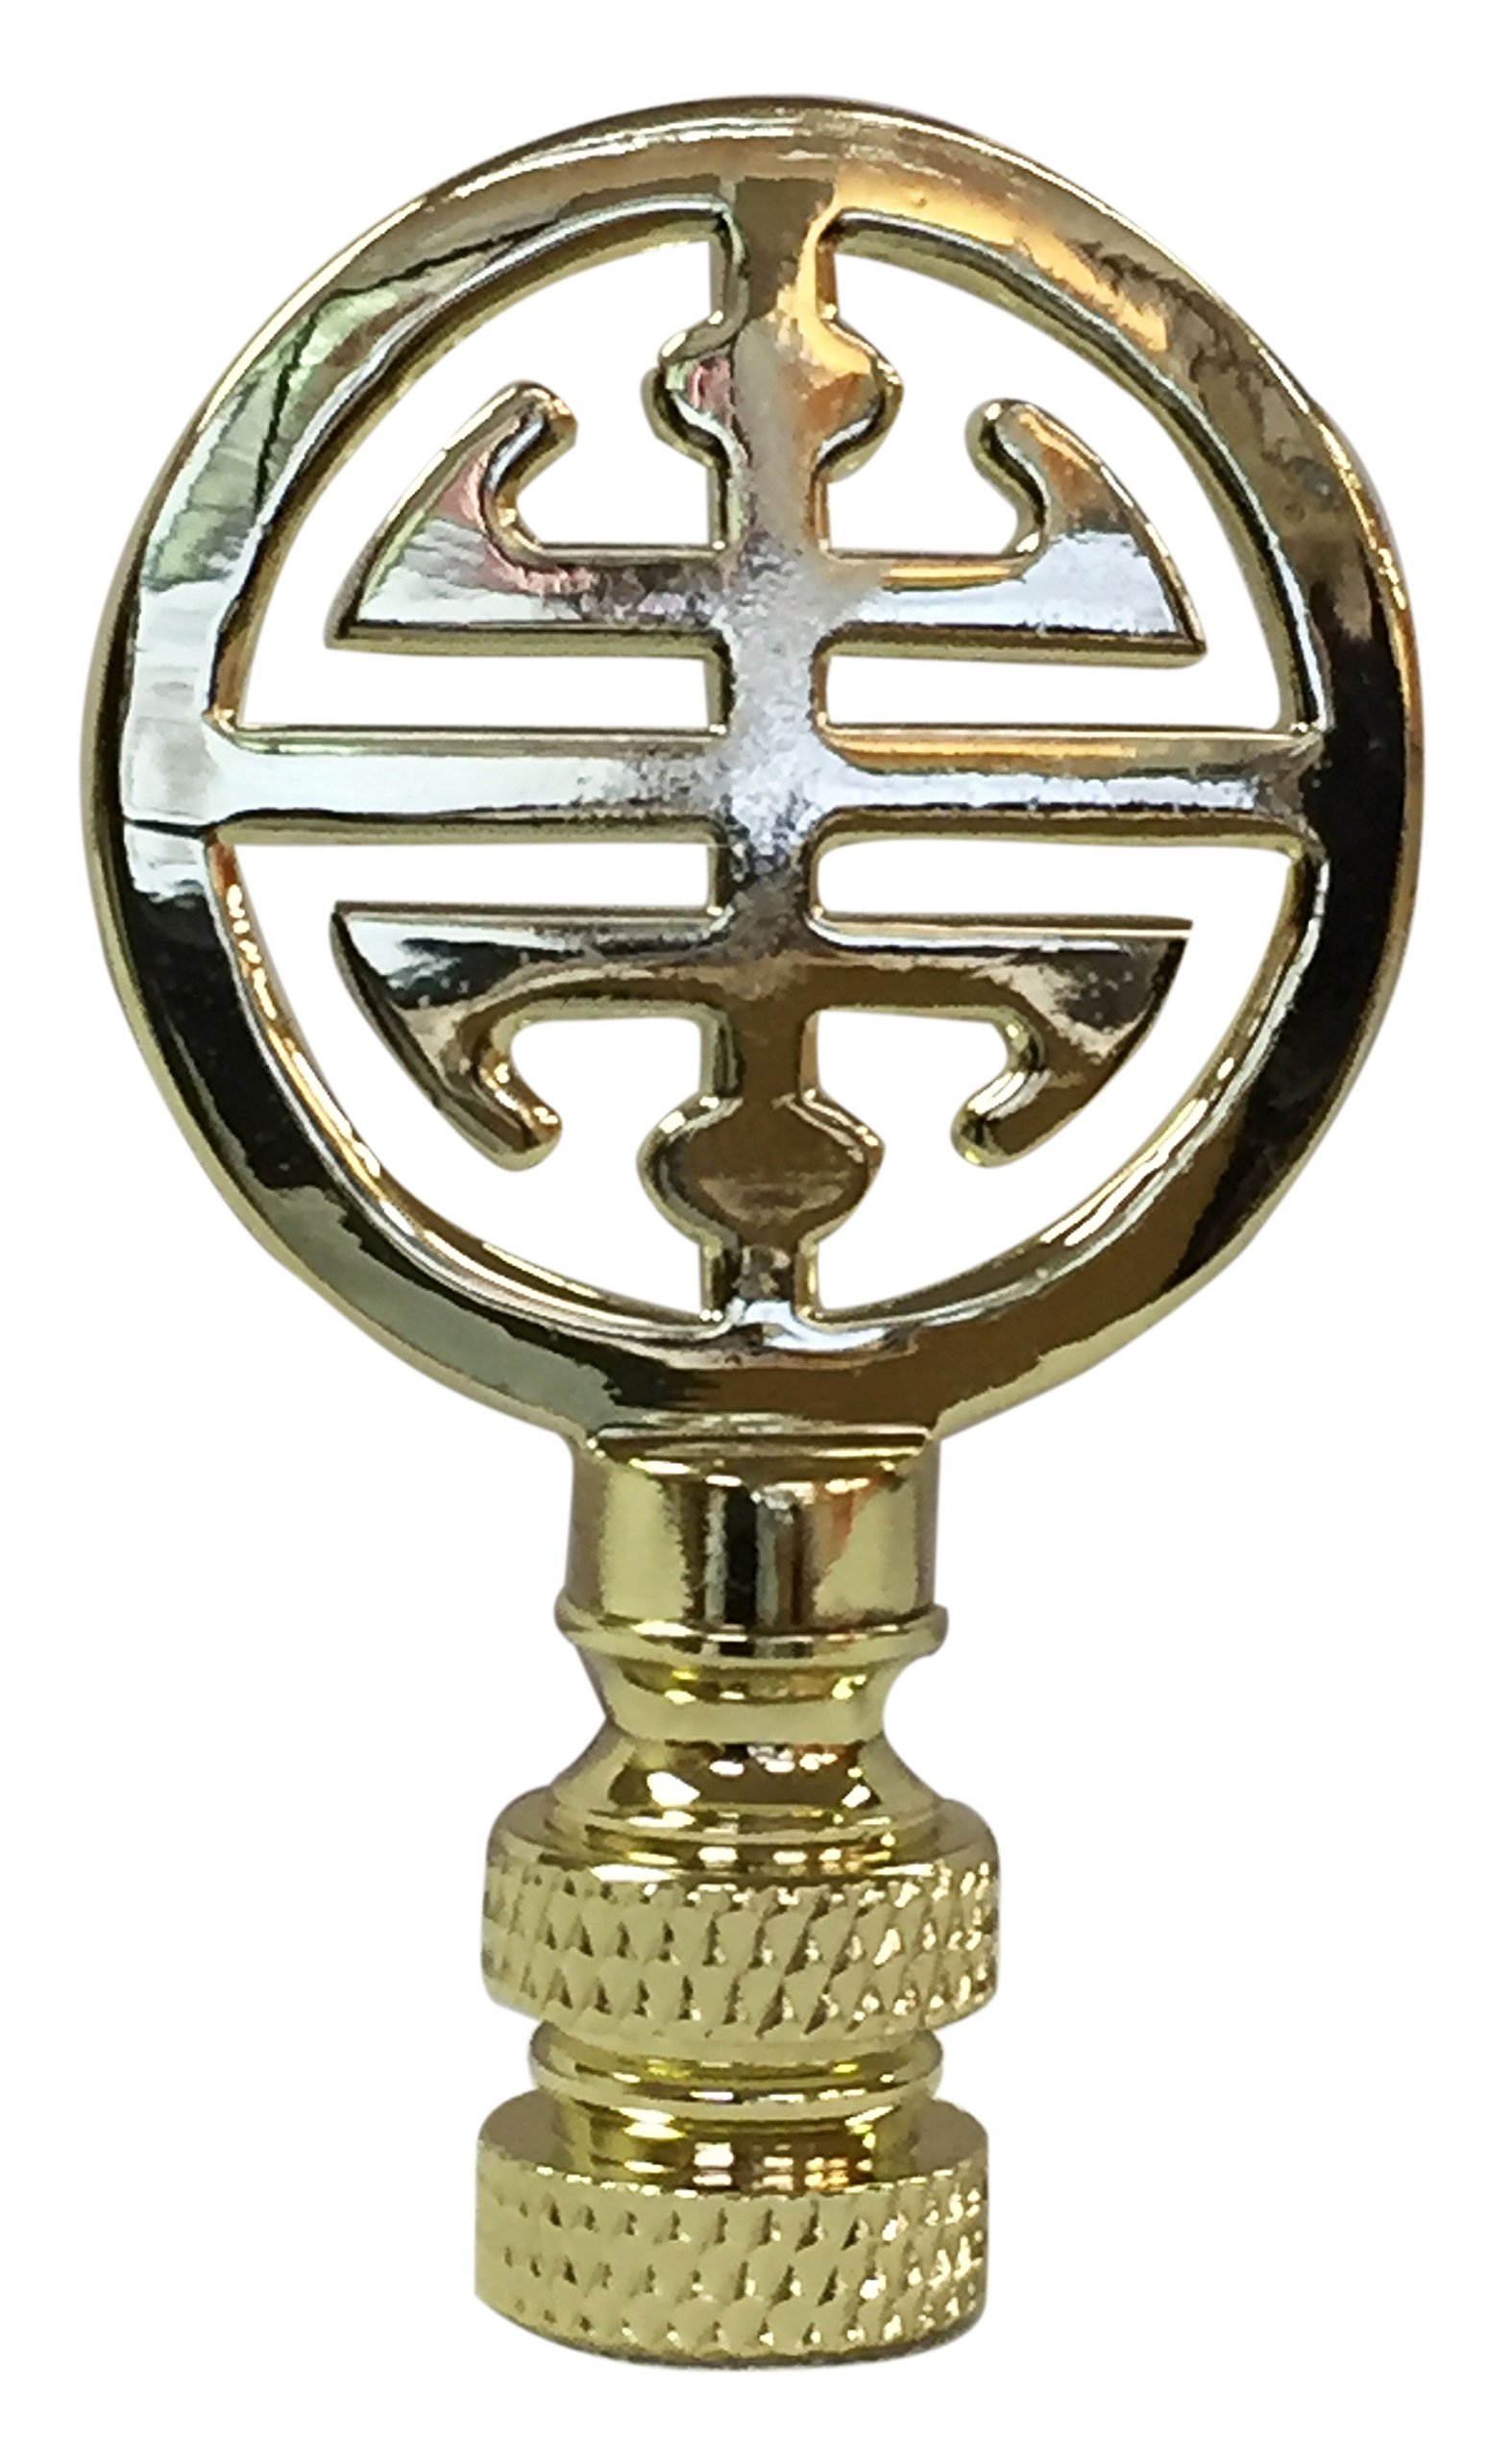 Royal Designs Oriental Happiness Symbol Lamp Finial for Lamp Shade- Polished Brass